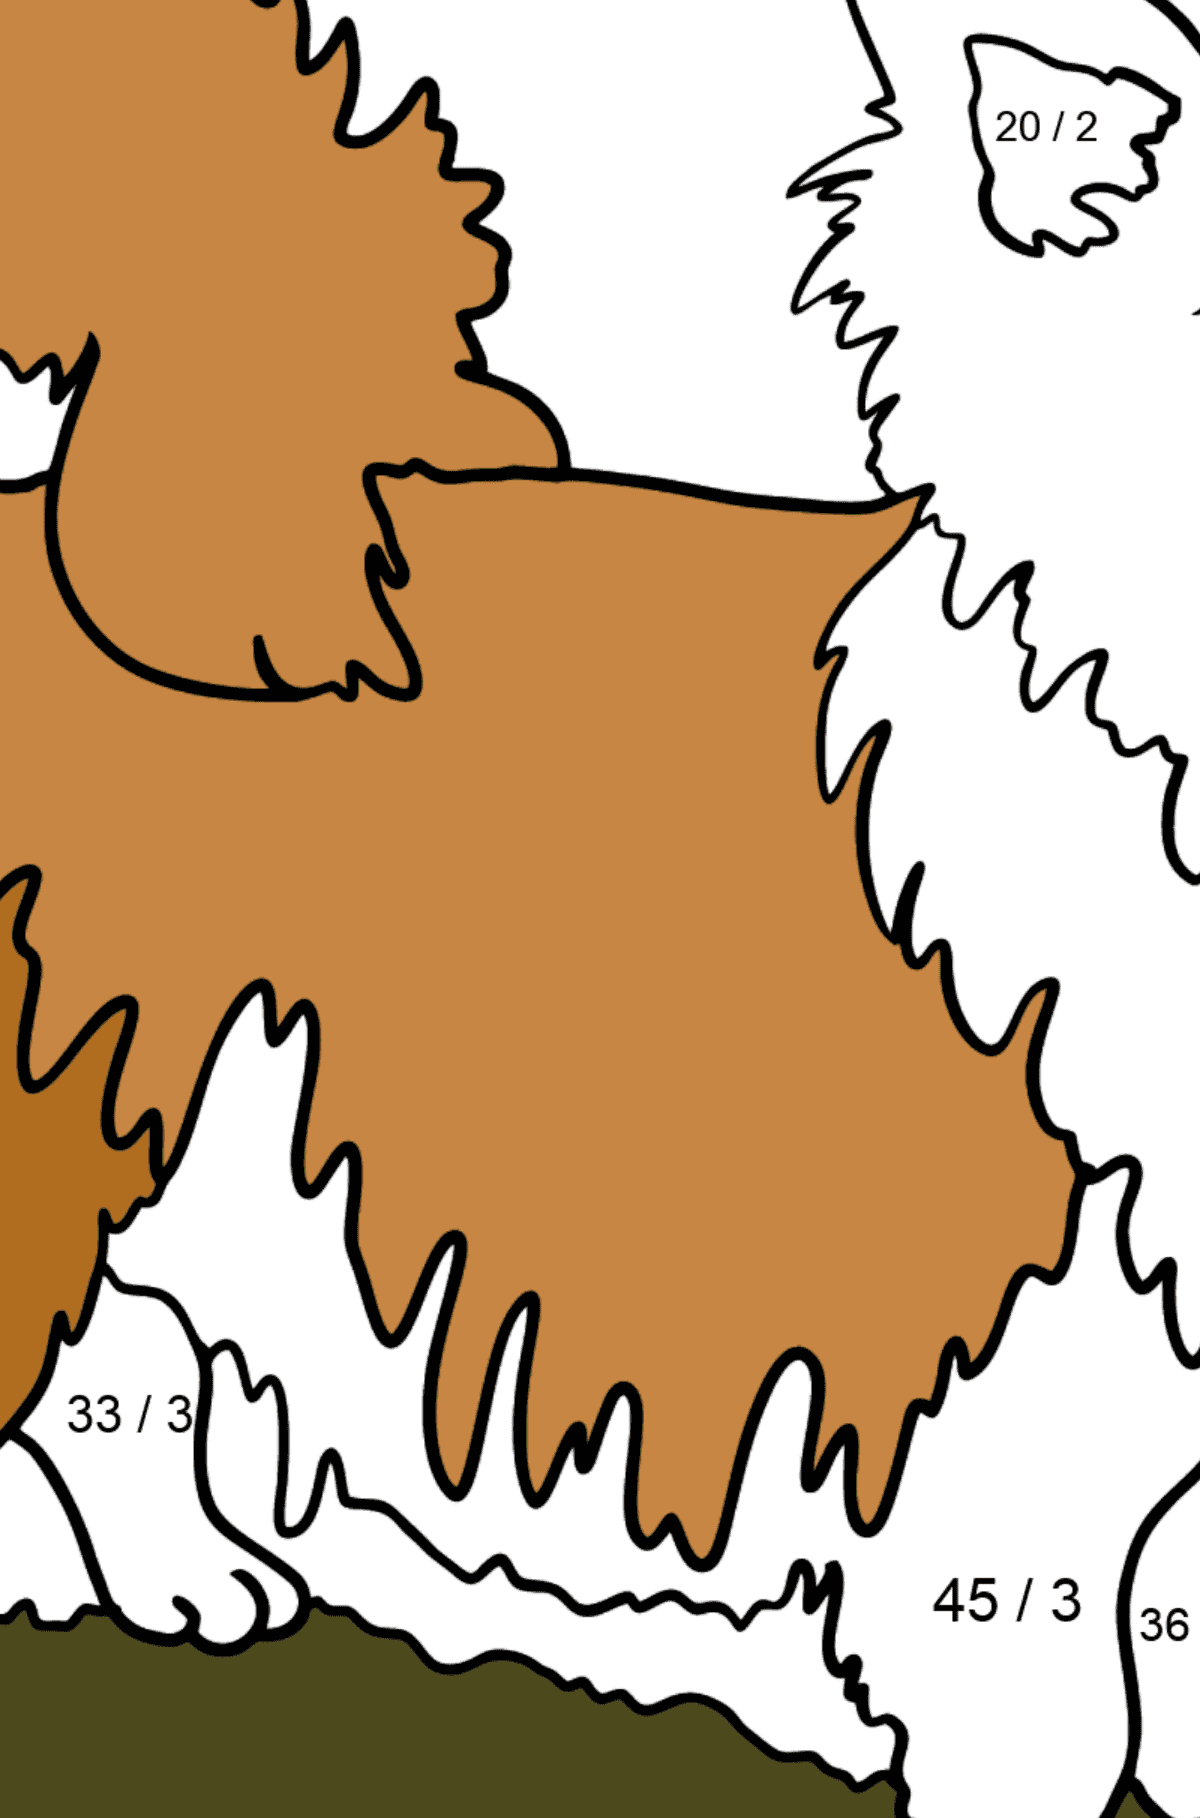 Chihuahua coloring page - Math Coloring - Division for Kids